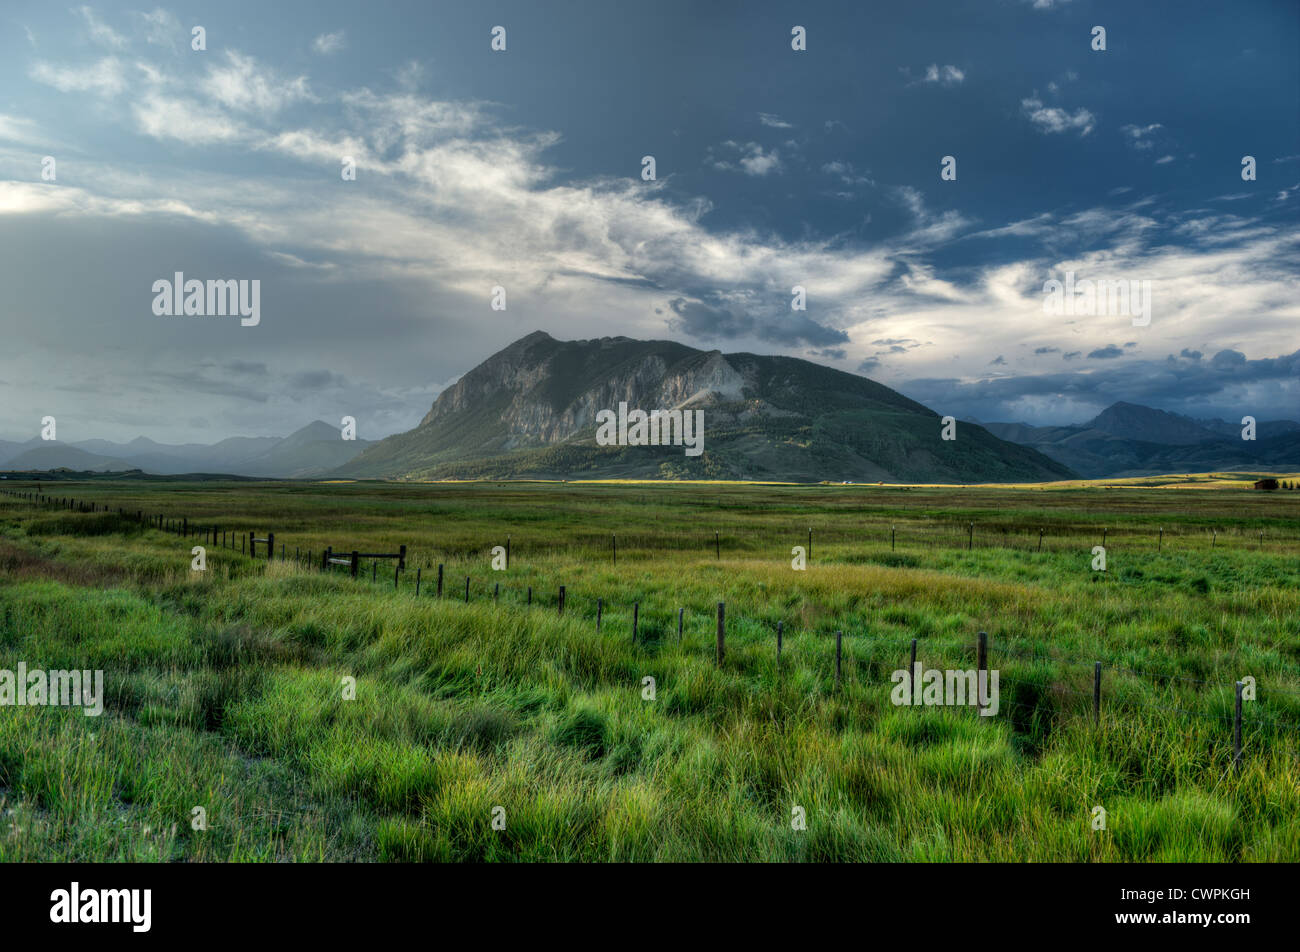 Crested Butte the mountain, right next to the Colorado town of the same name, at sundown on a late summer day. - Stock Image